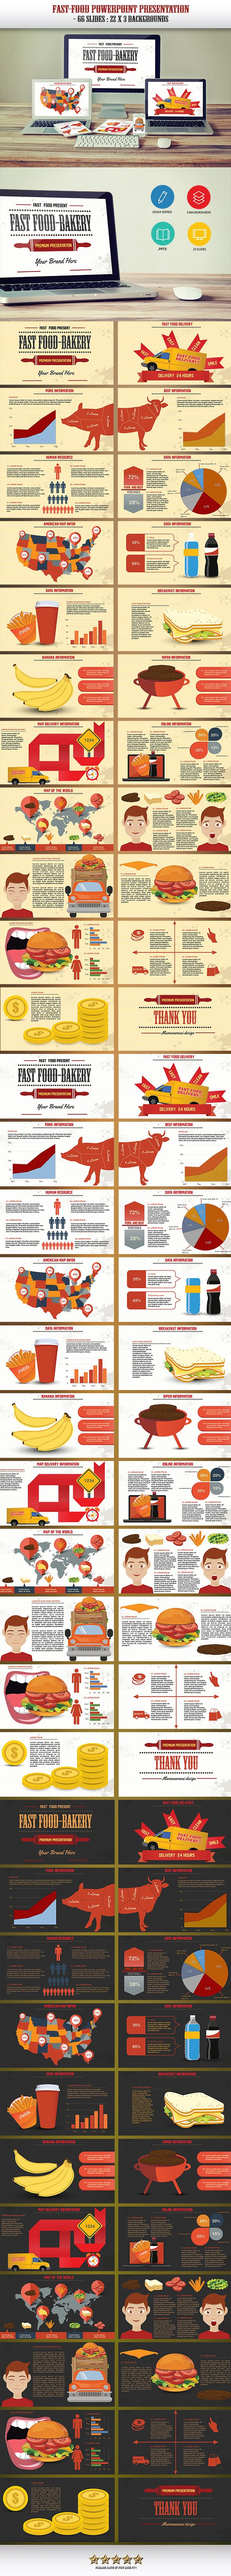 Fast food powerpoint presentation business powerpoint templates fast food powerpoint presentation business powerpoint templates toneelgroepblik Gallery